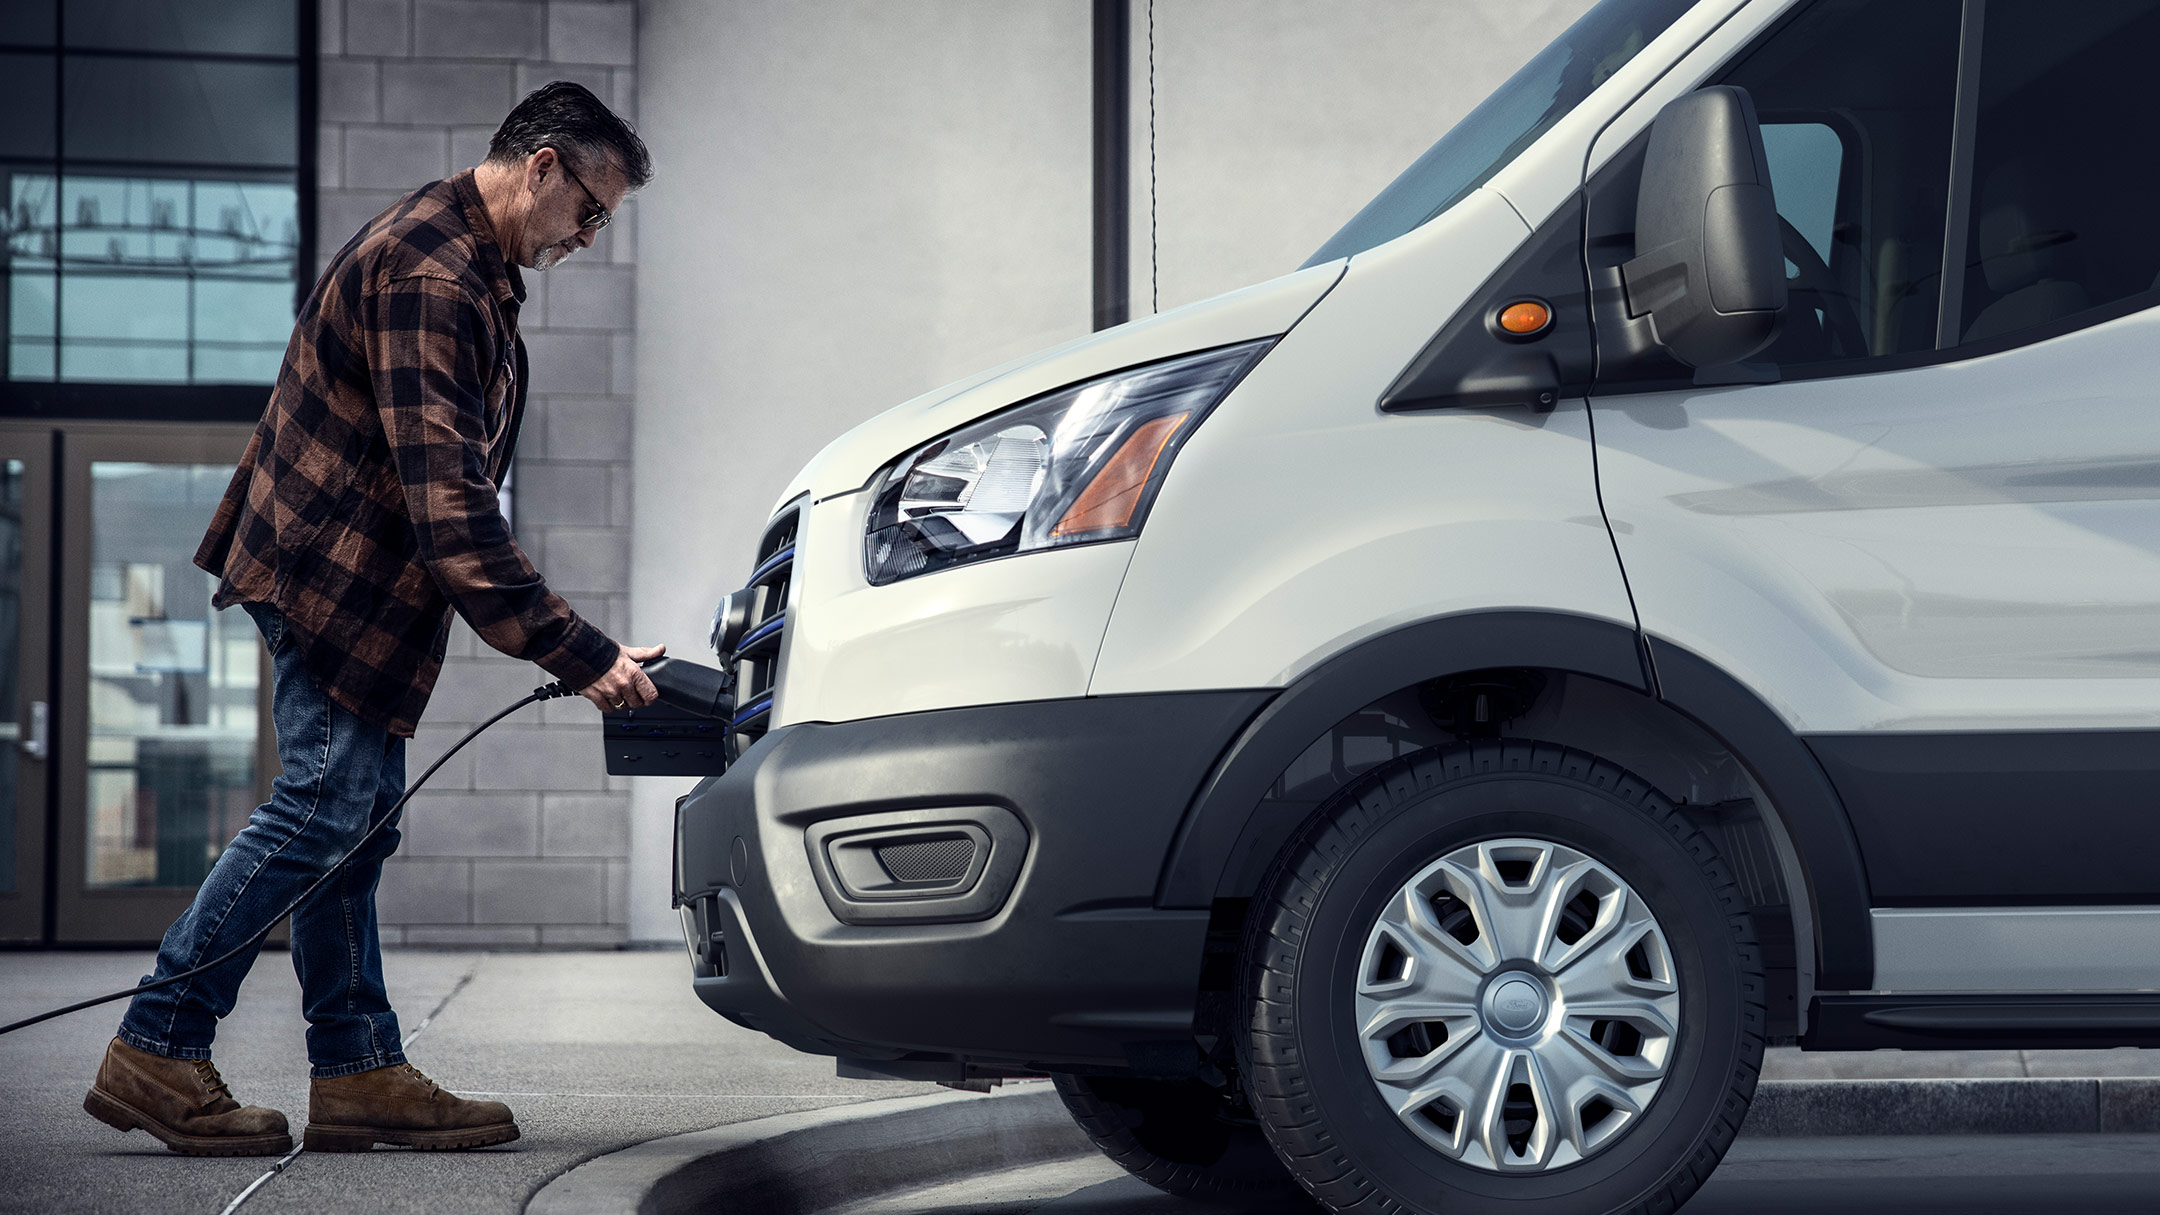 All New Ford E-Transit charging in public